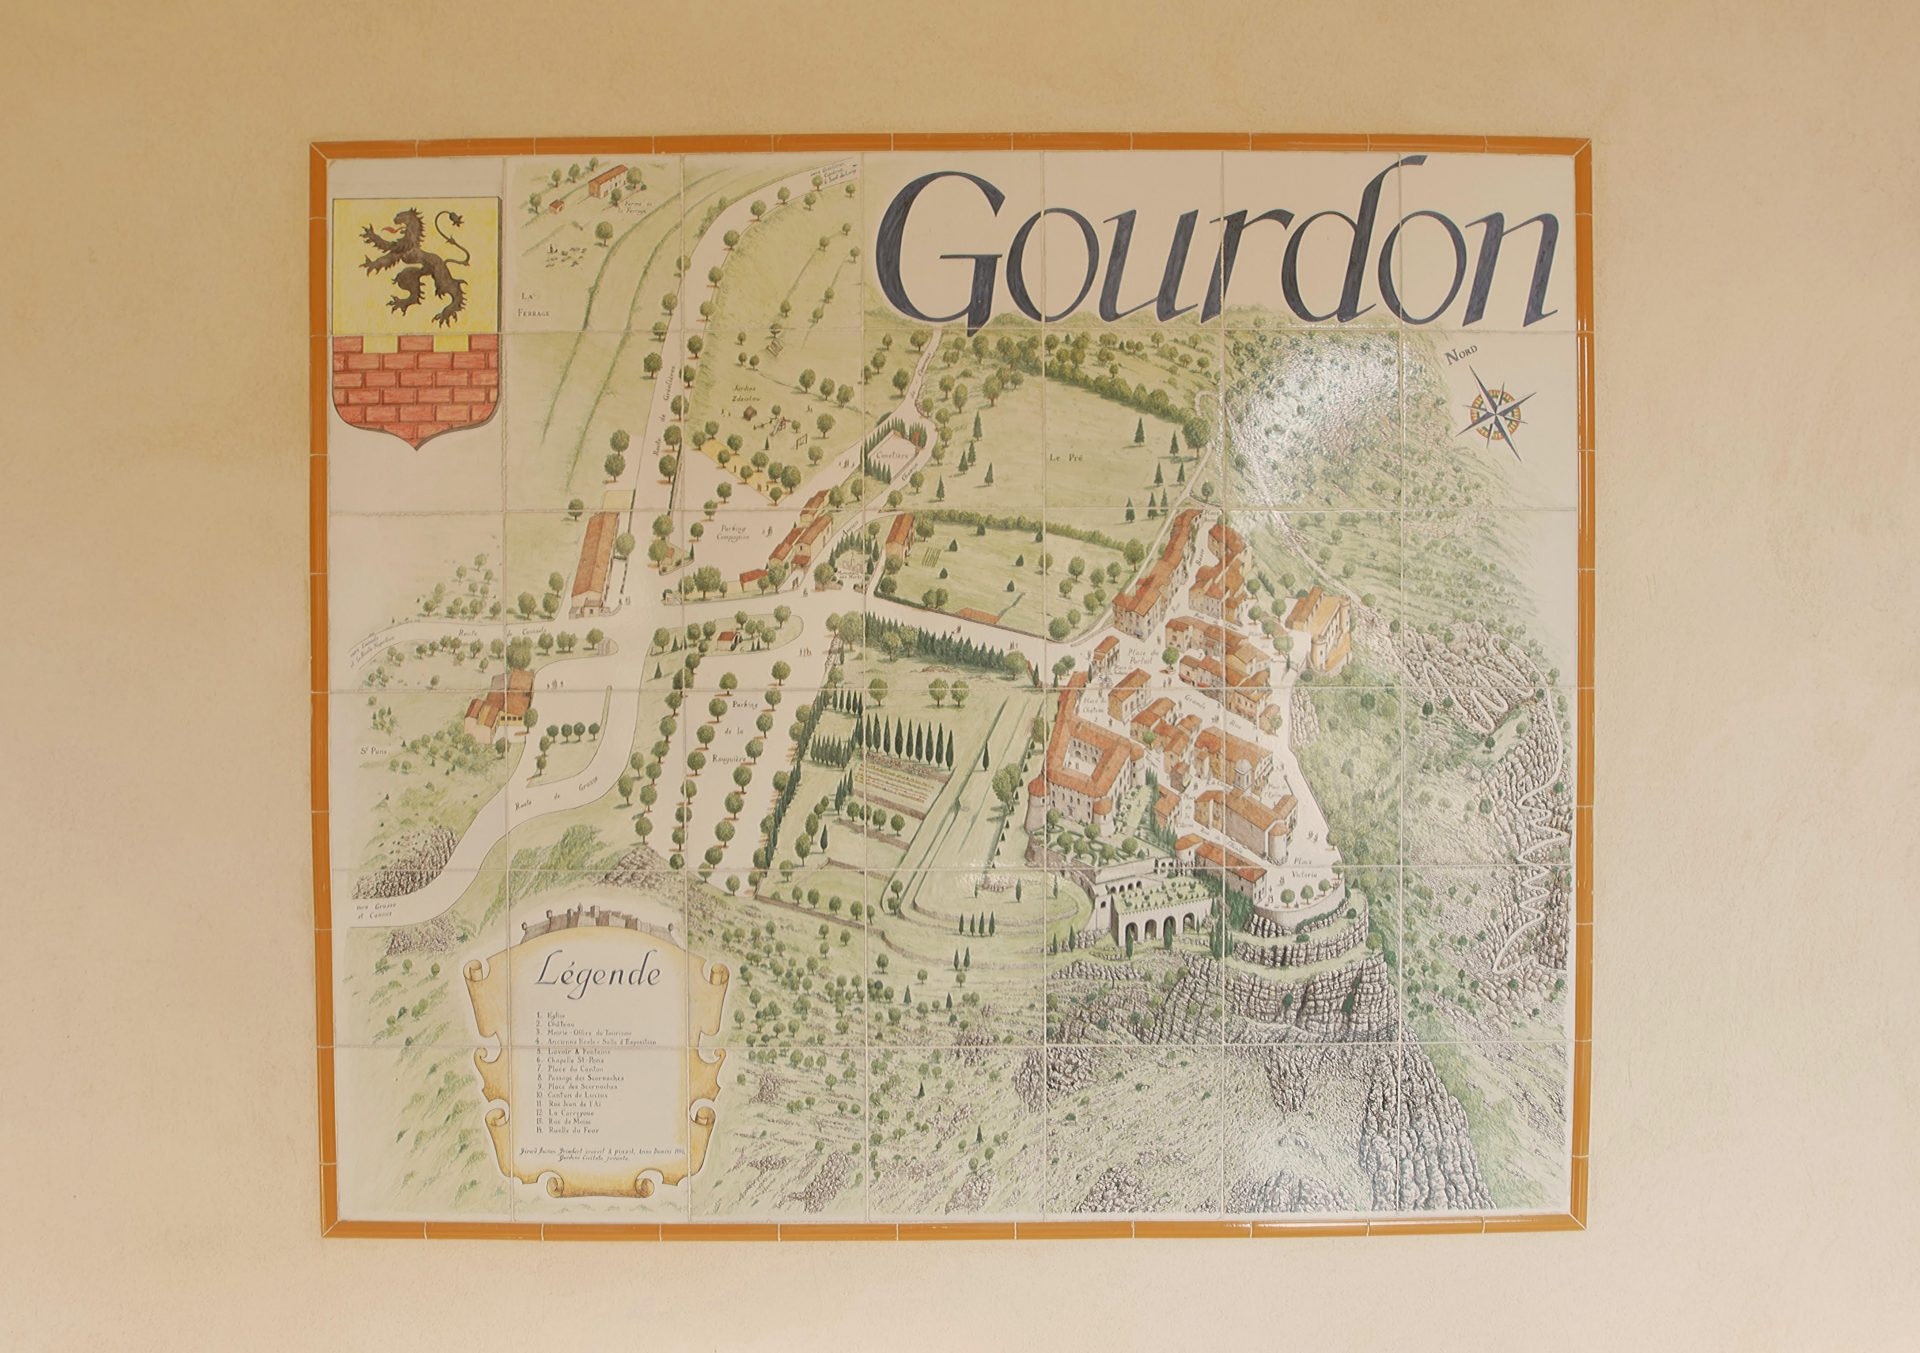 Gourdon map